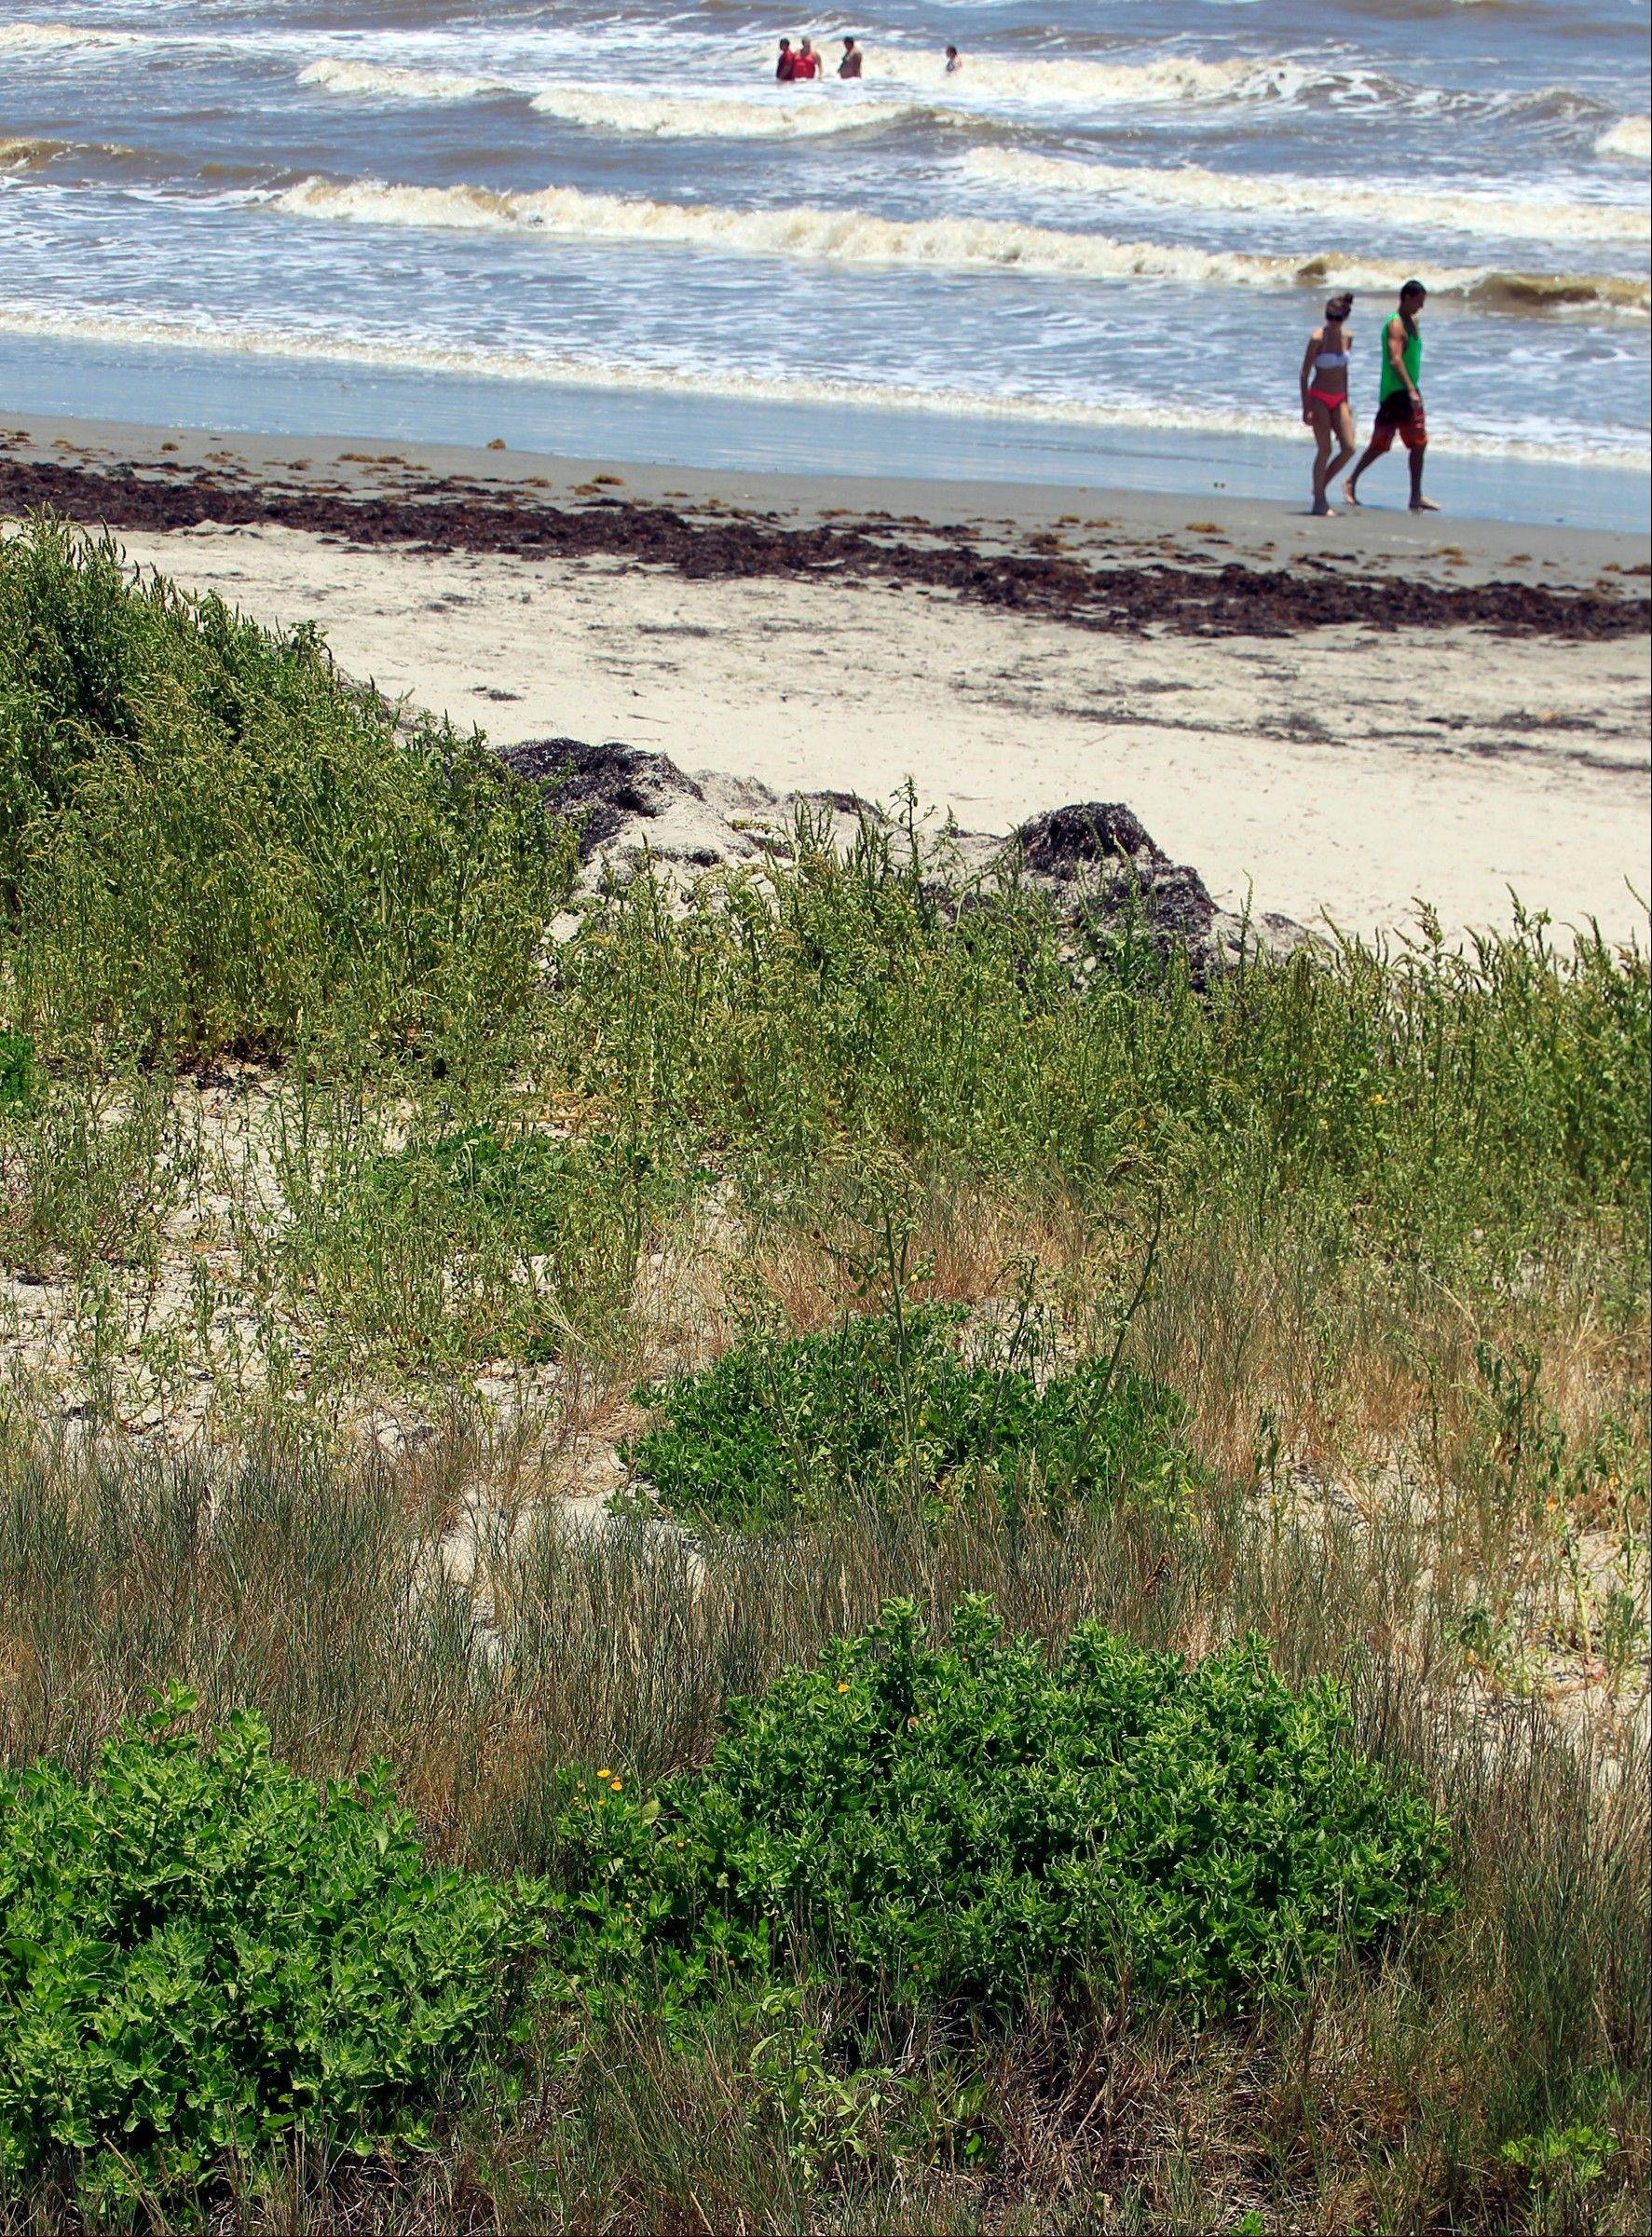 Beachgoers walk along the beach near 17th Street in Galveston, Texas, where dunes built from scraping seaweed off the beach support a variety of vegetation. The Park Board of Trustees voted unanimously to support projects that will create �seaweed-enhanced sand dunes� on the island.